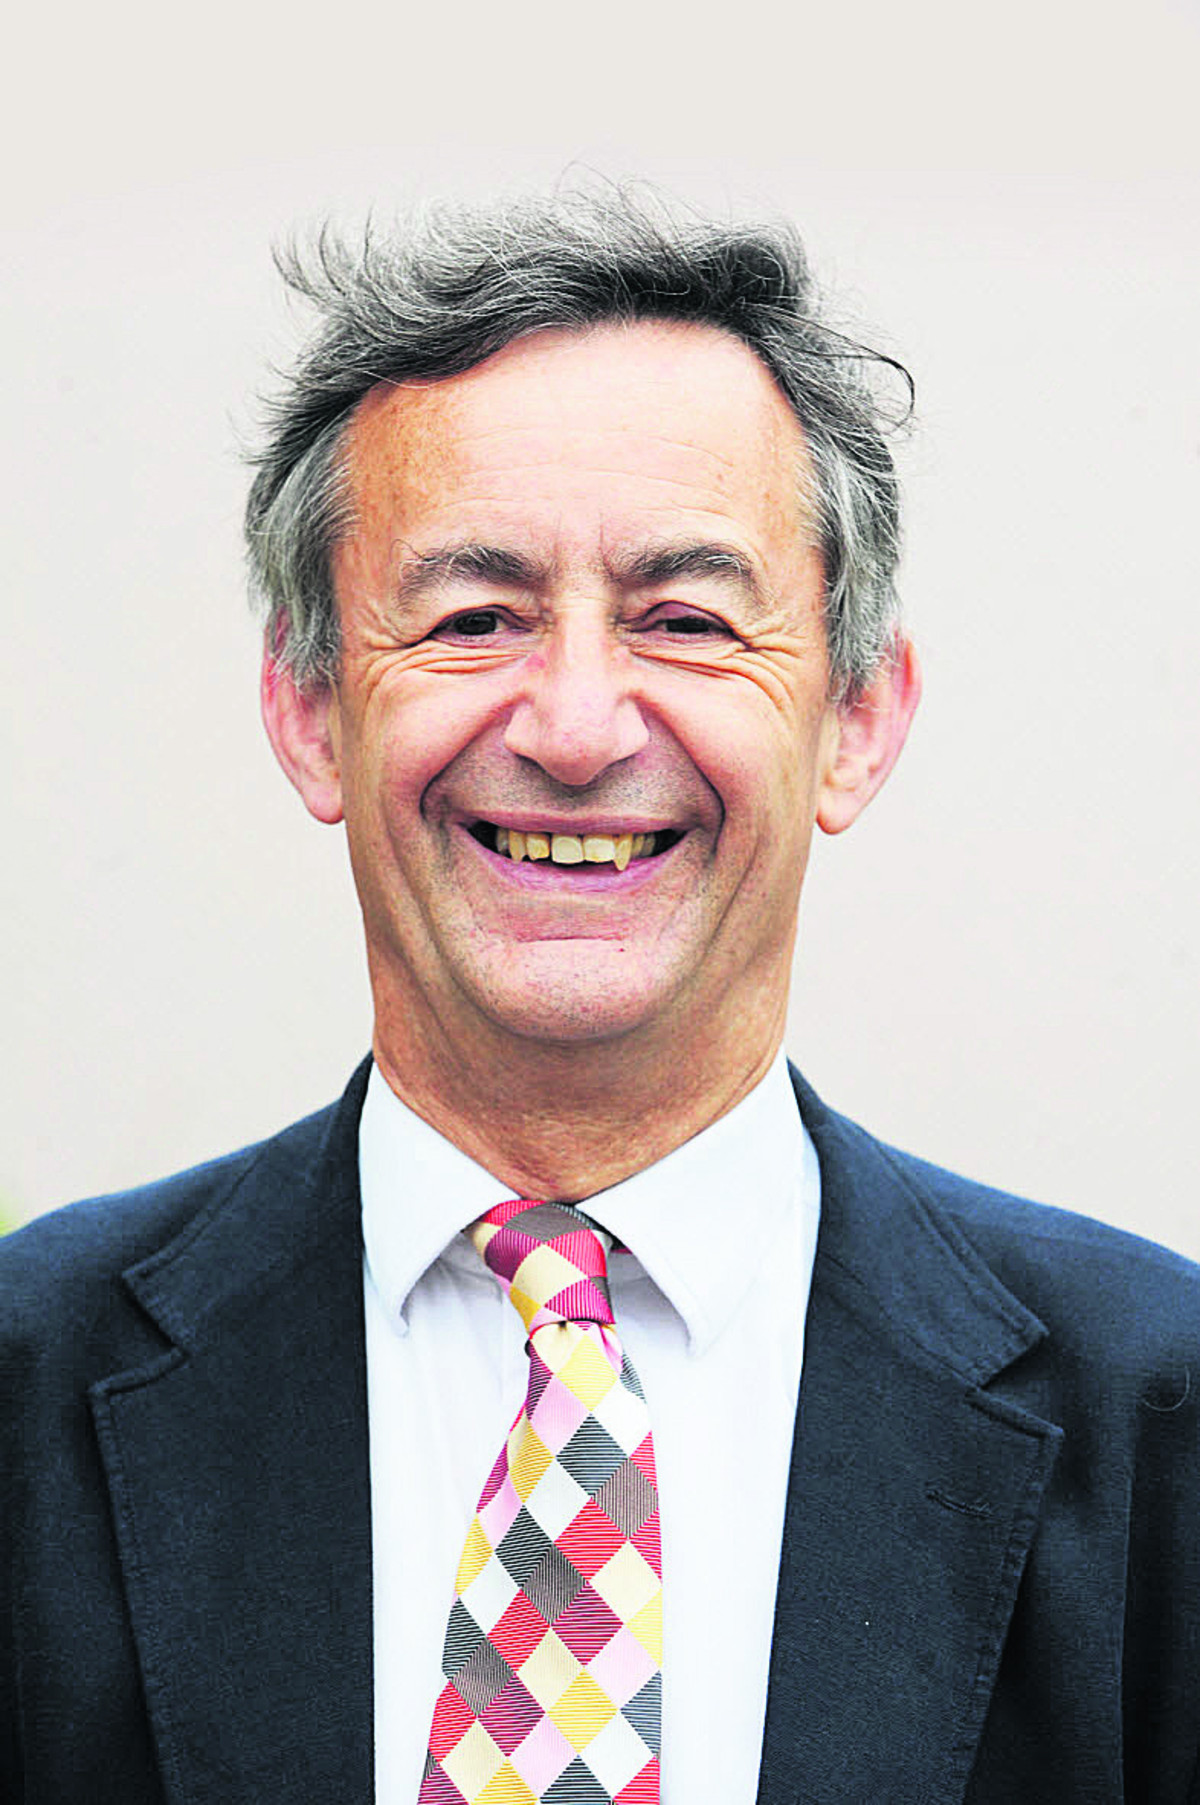 County councillor David Nimmo Smith